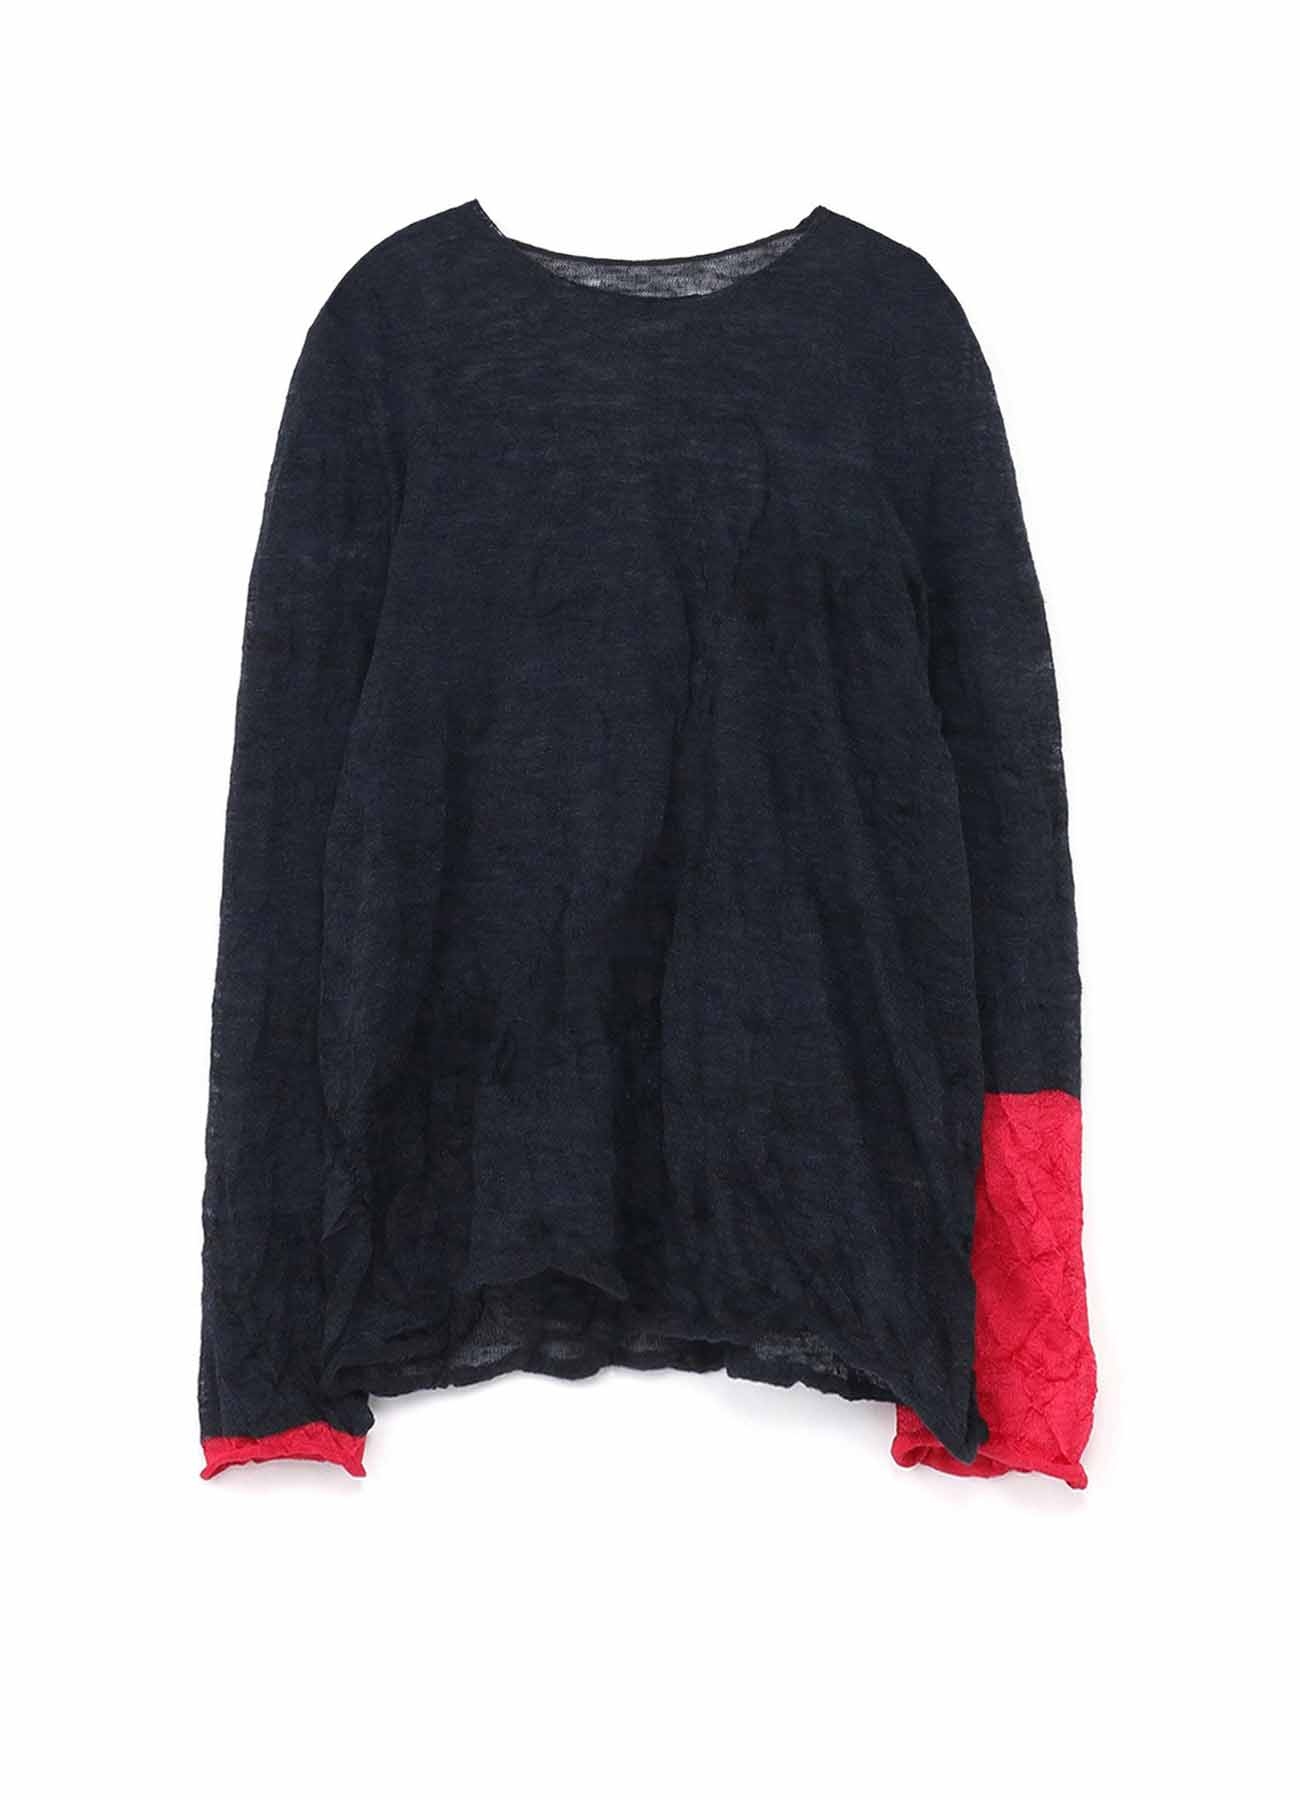 JAPAN LINKS ROUND NECK LONG SLEEVE PULLOVER